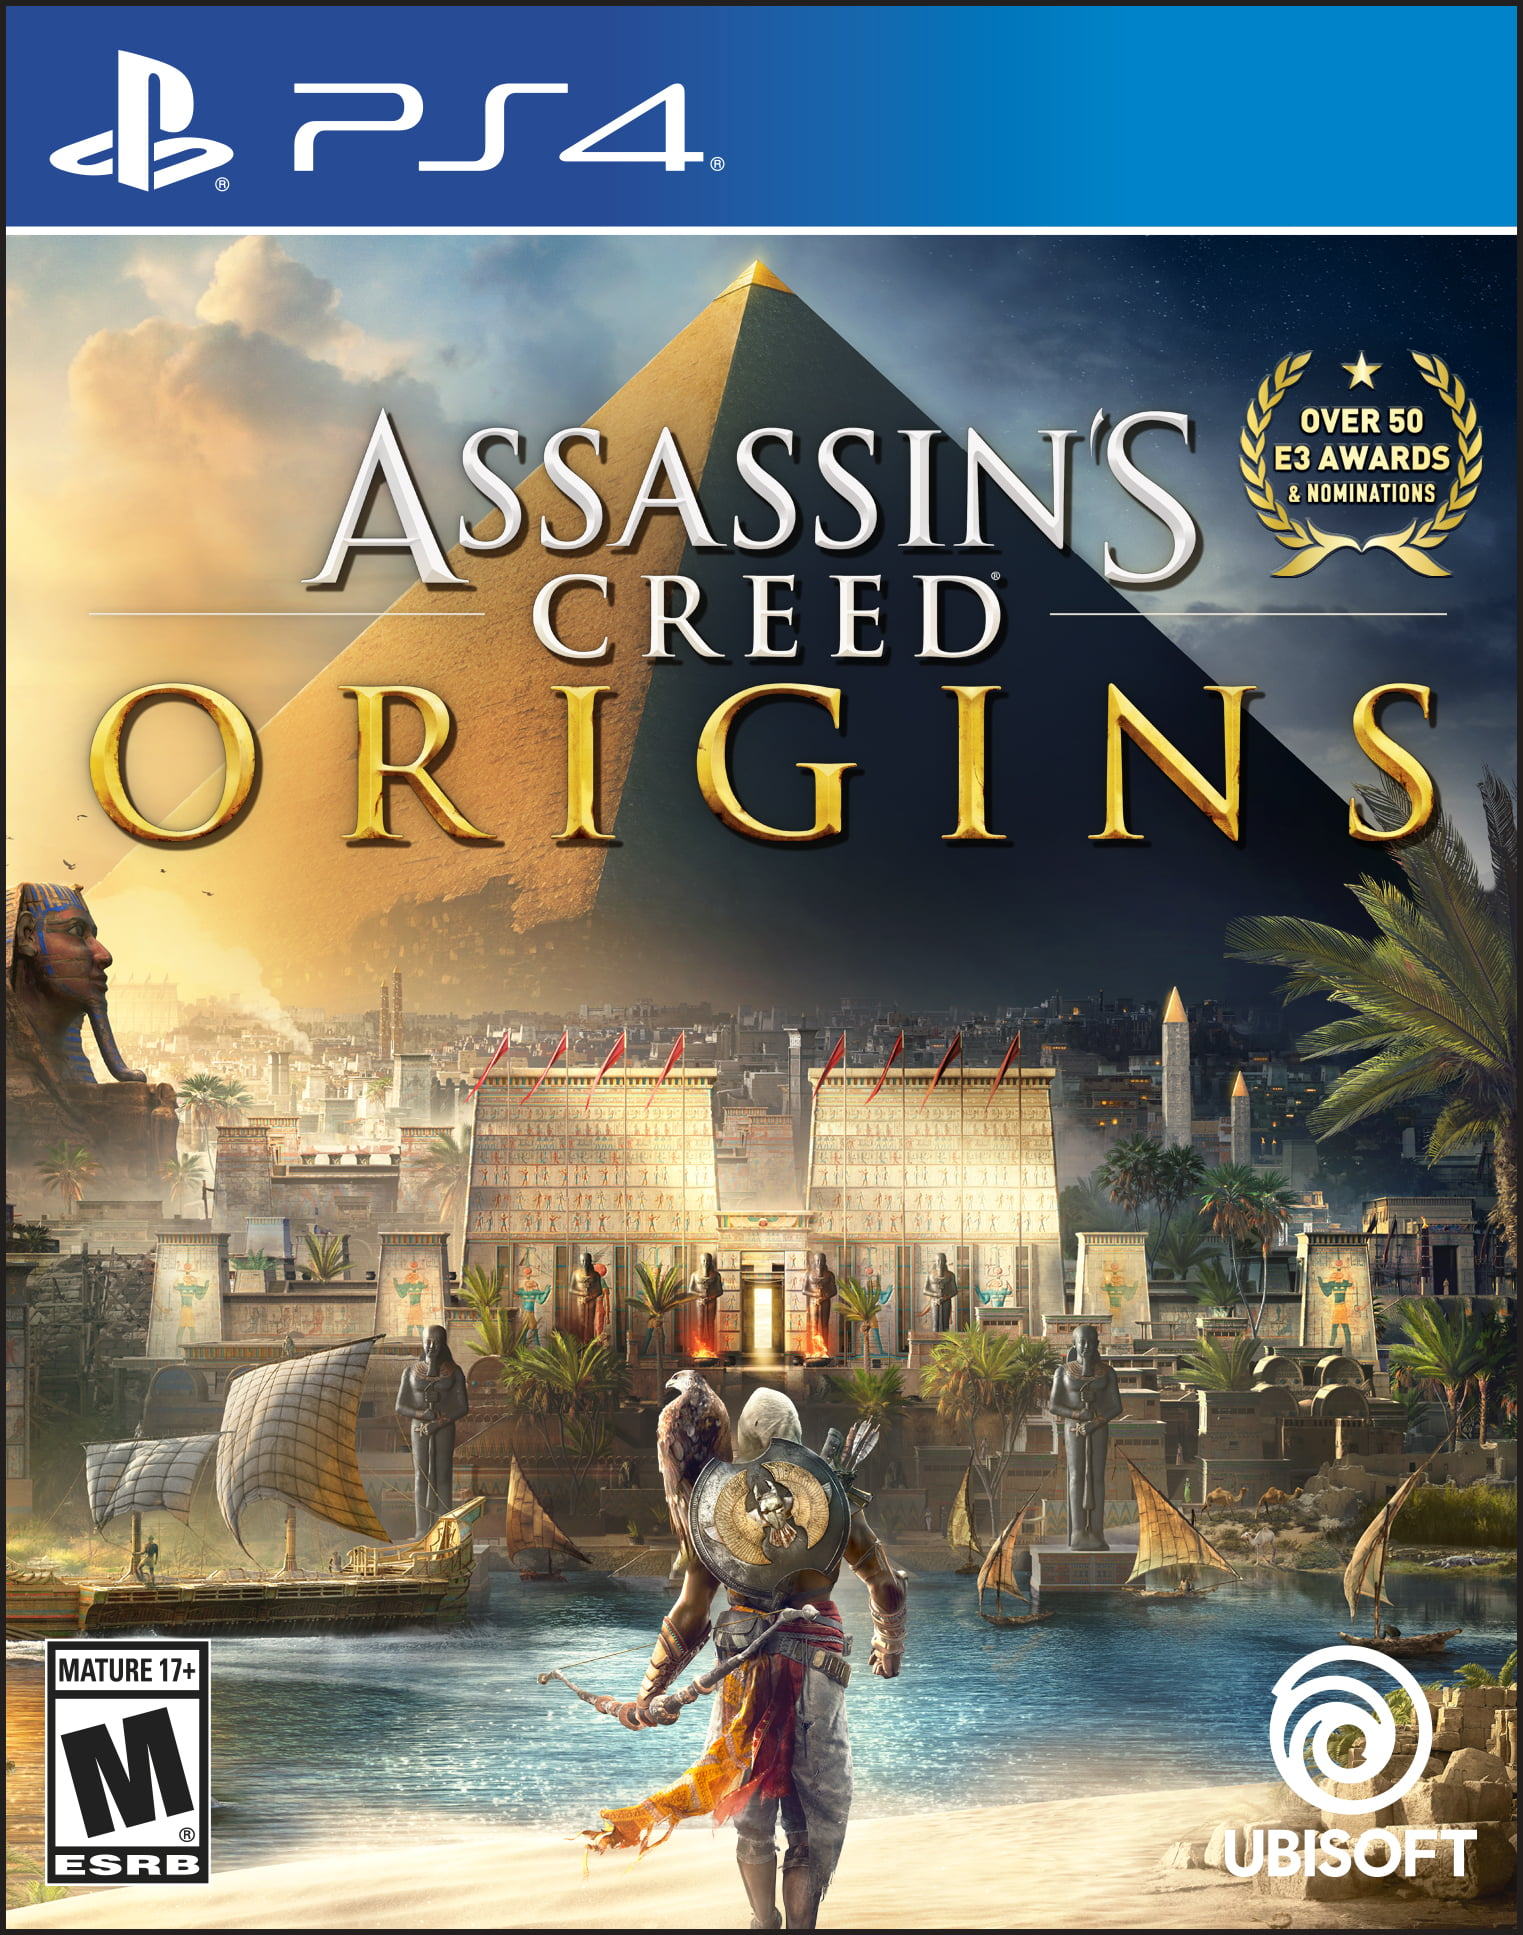 Assassin's Creed: Origins, Ubisoft, PlayStation 4, 887256028398 by Ubisoft